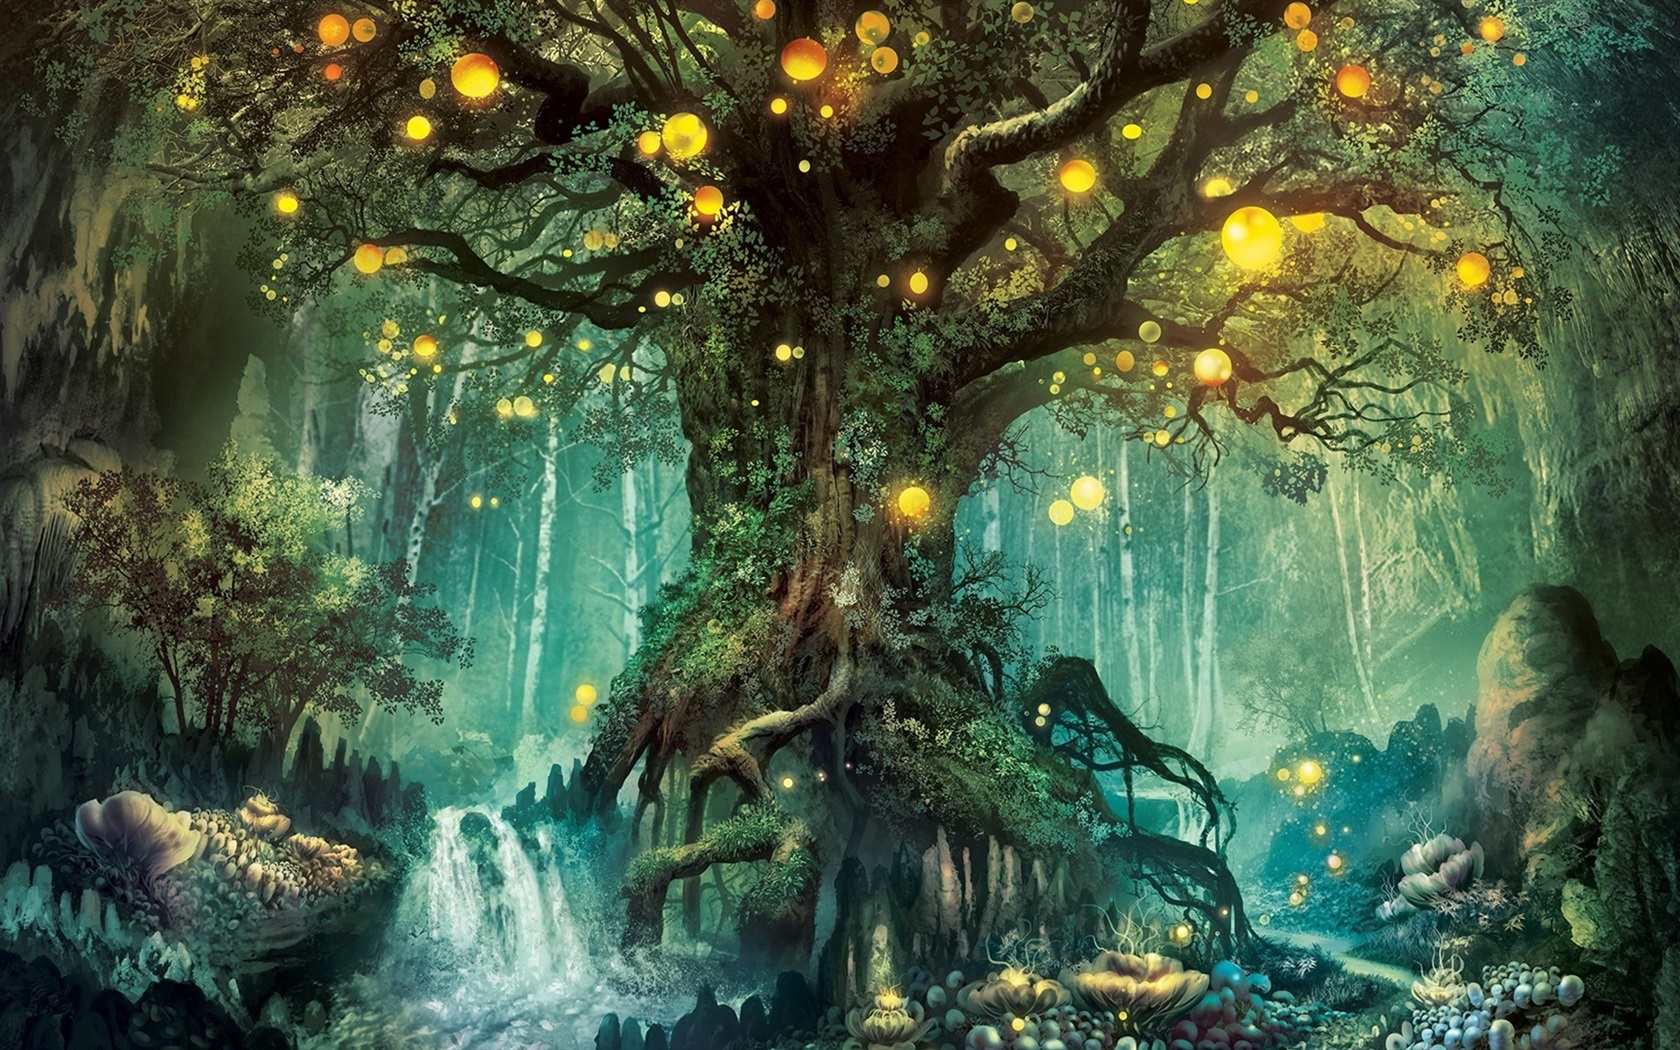 Magic-forest-tree-lights-creative-design